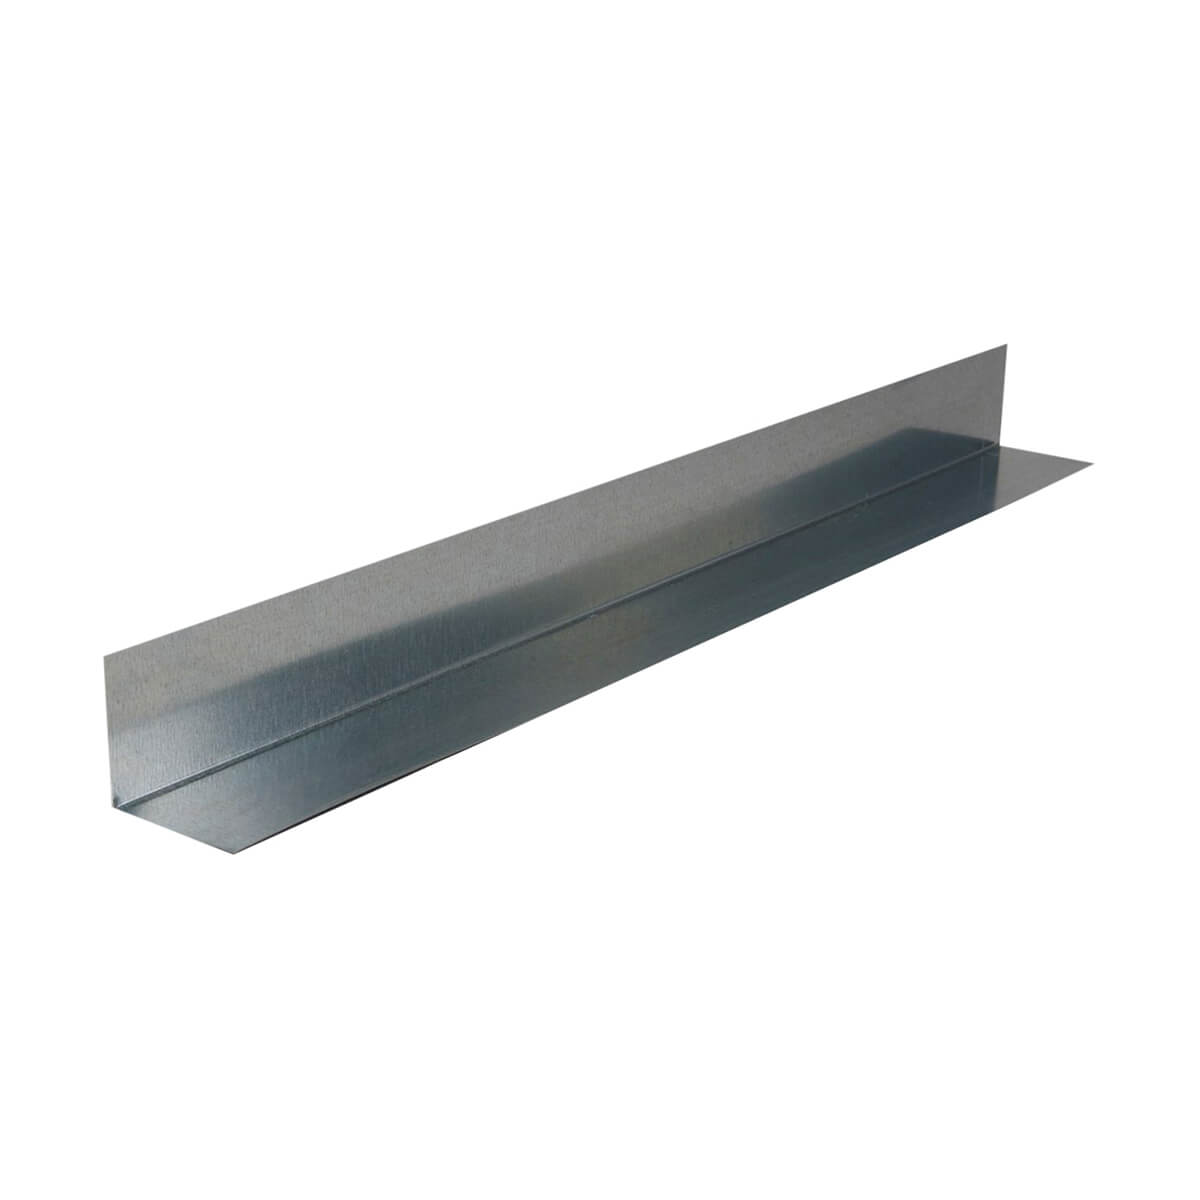 Kaycan Angle Flashing - 2-in x 2-in x 10-ft - Natural Finish